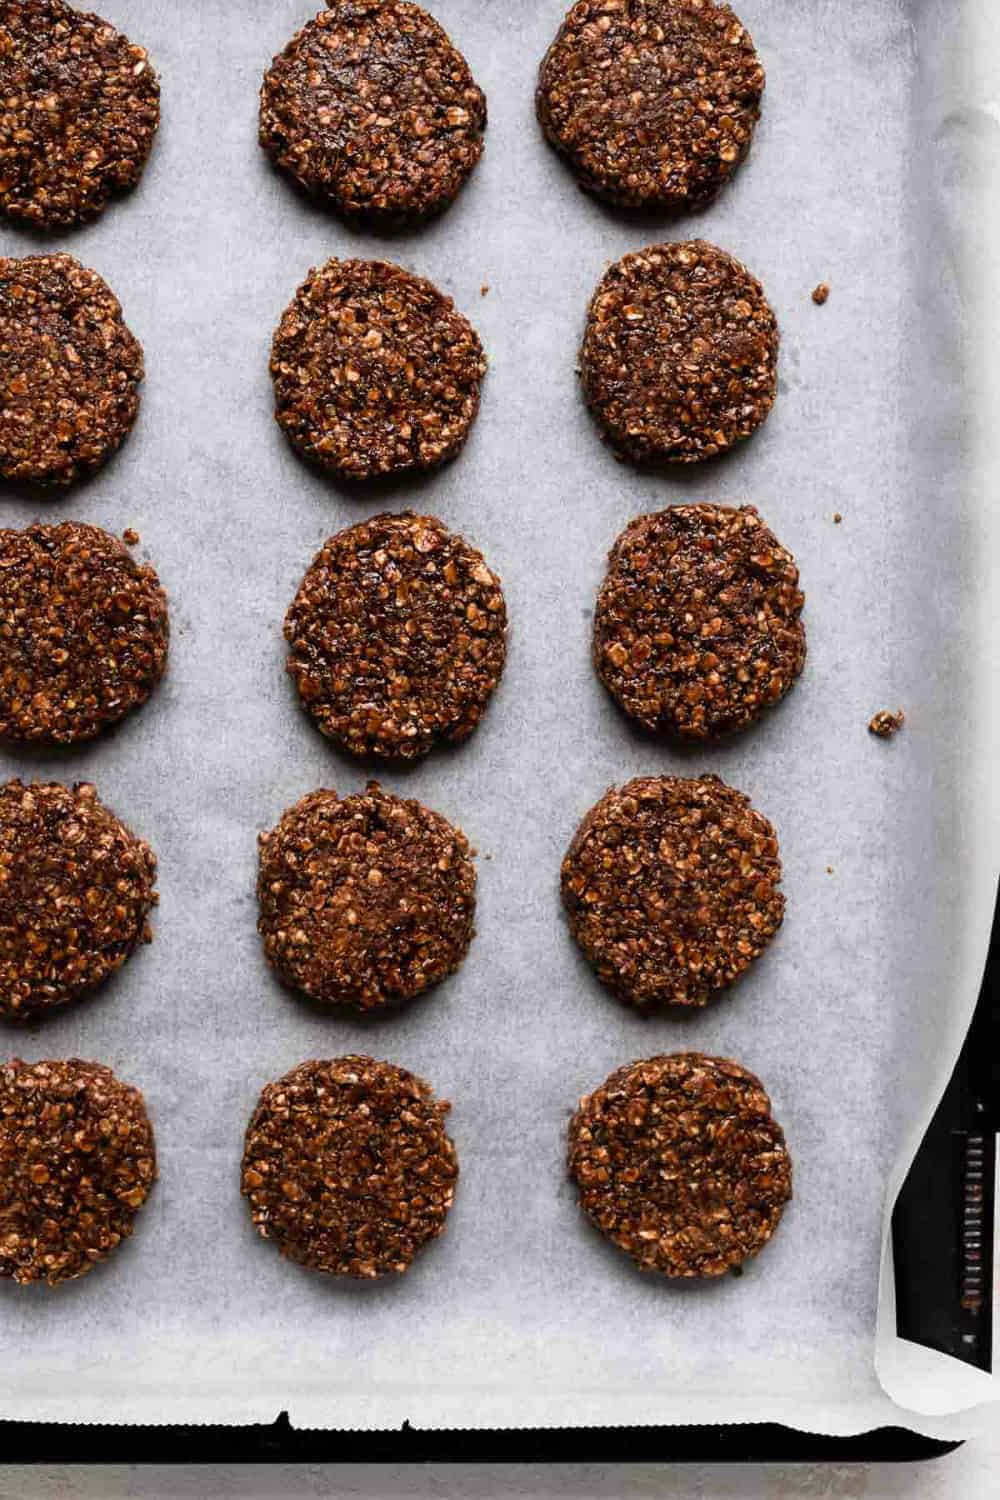 Flatted no bake cookies on a parchment-lined cookie sheet